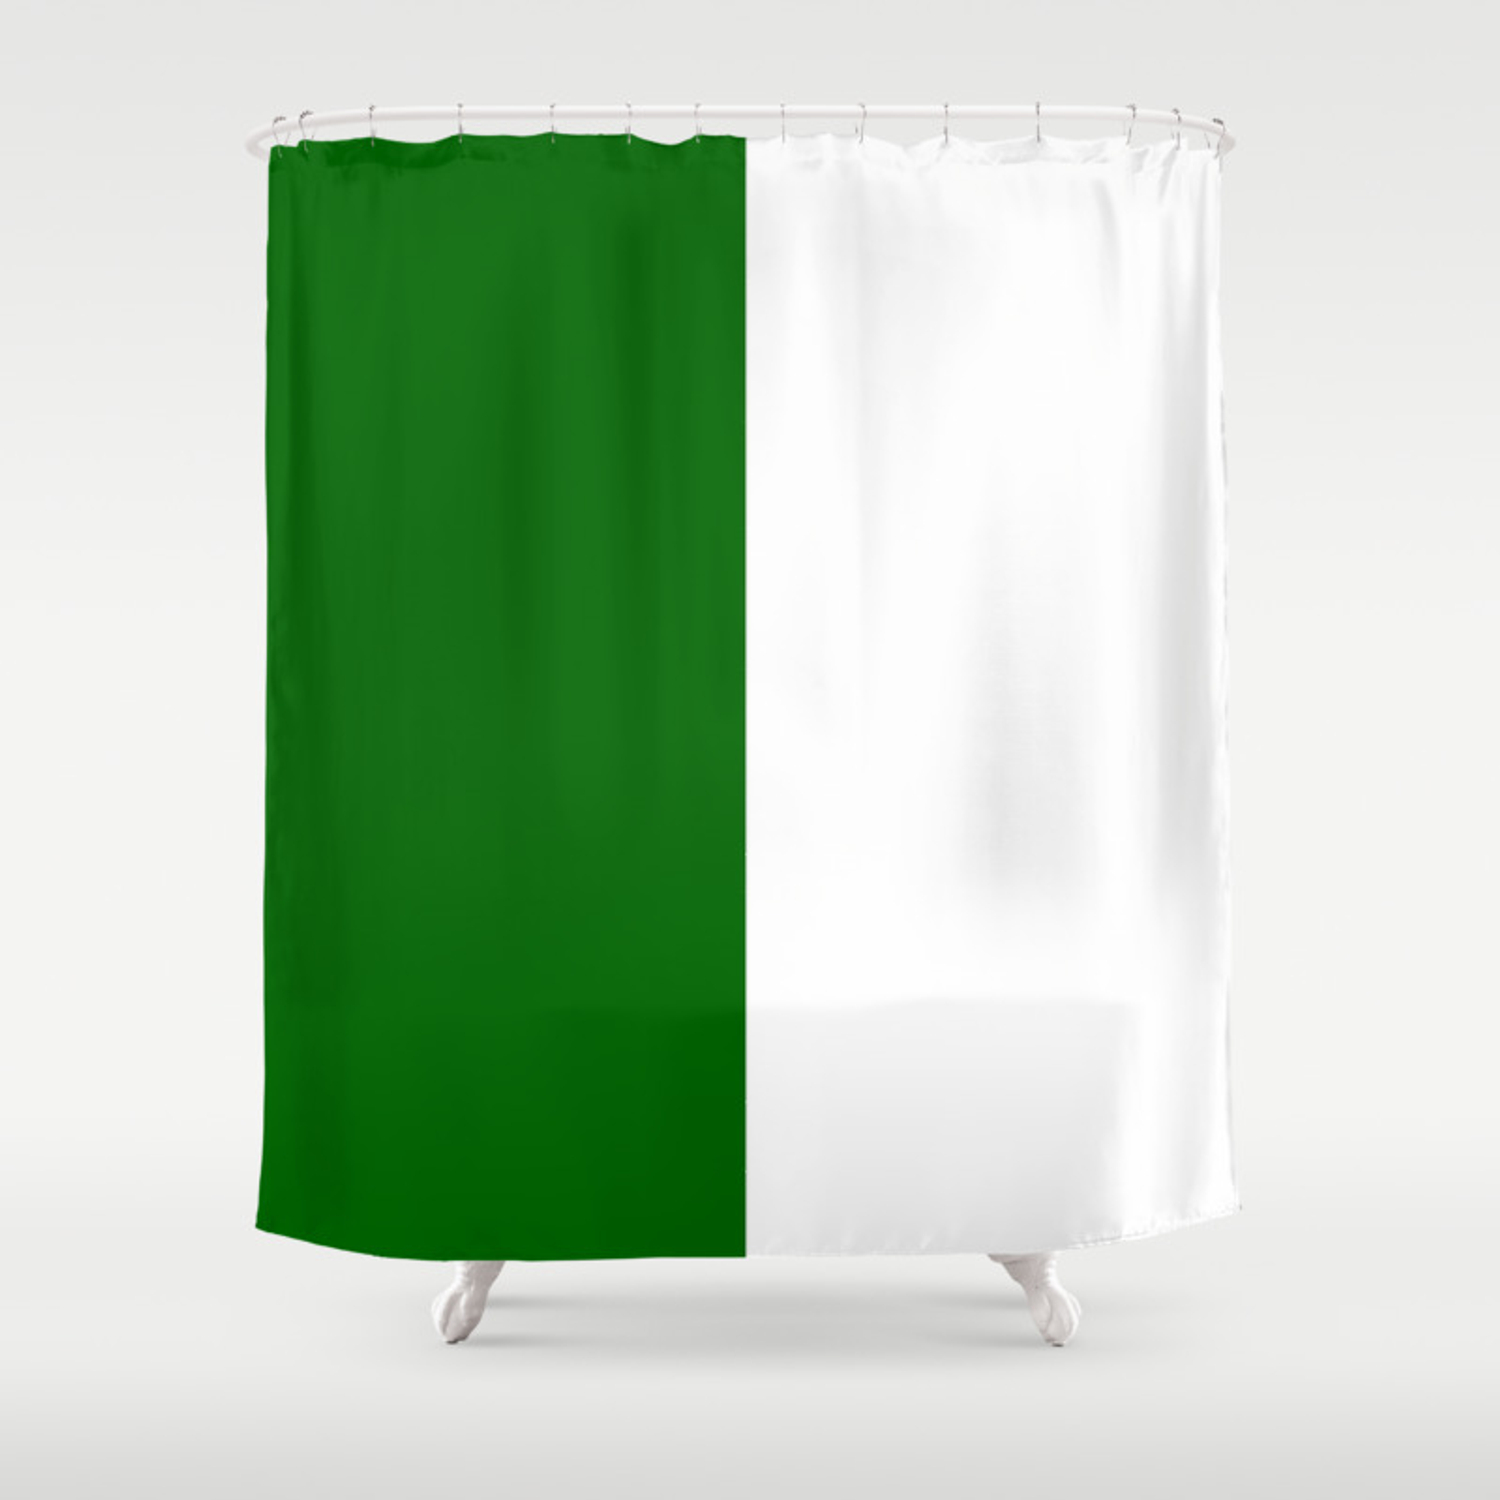 White And Dark Green Vertical Halves Shower Curtain